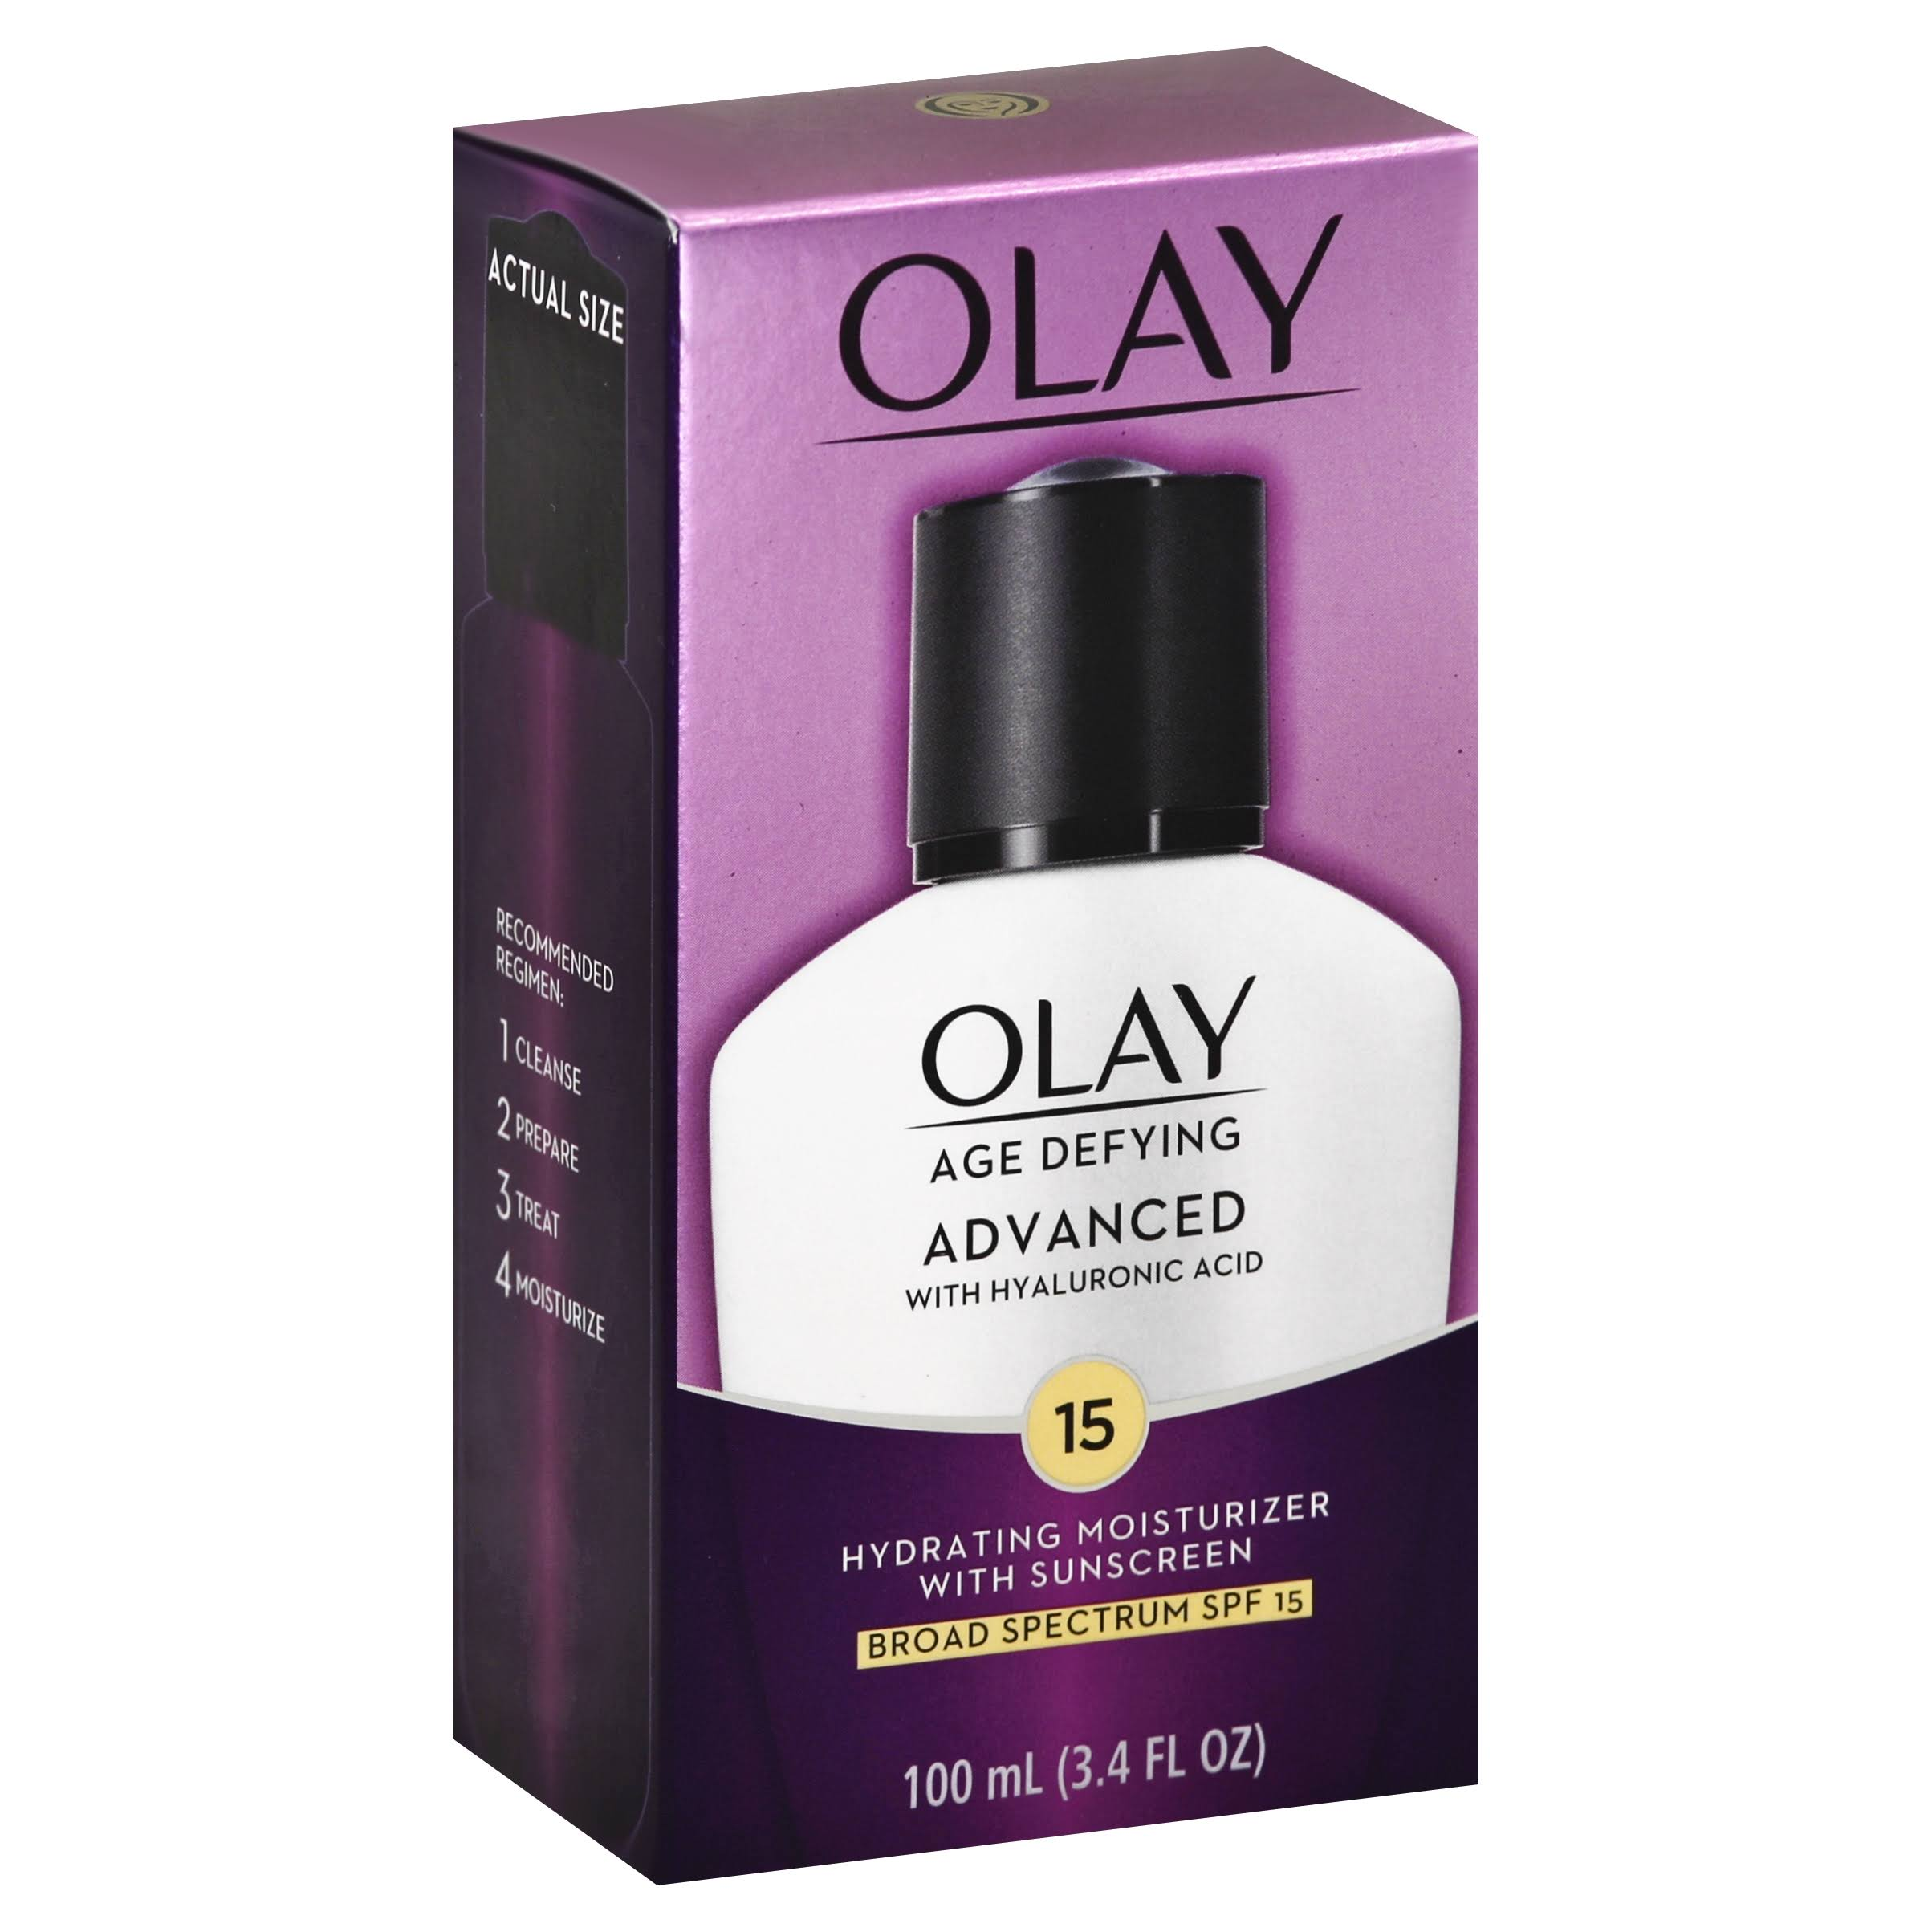 Olay Age Defying Advanced SPF 15 Moisturizer - 3.4oz